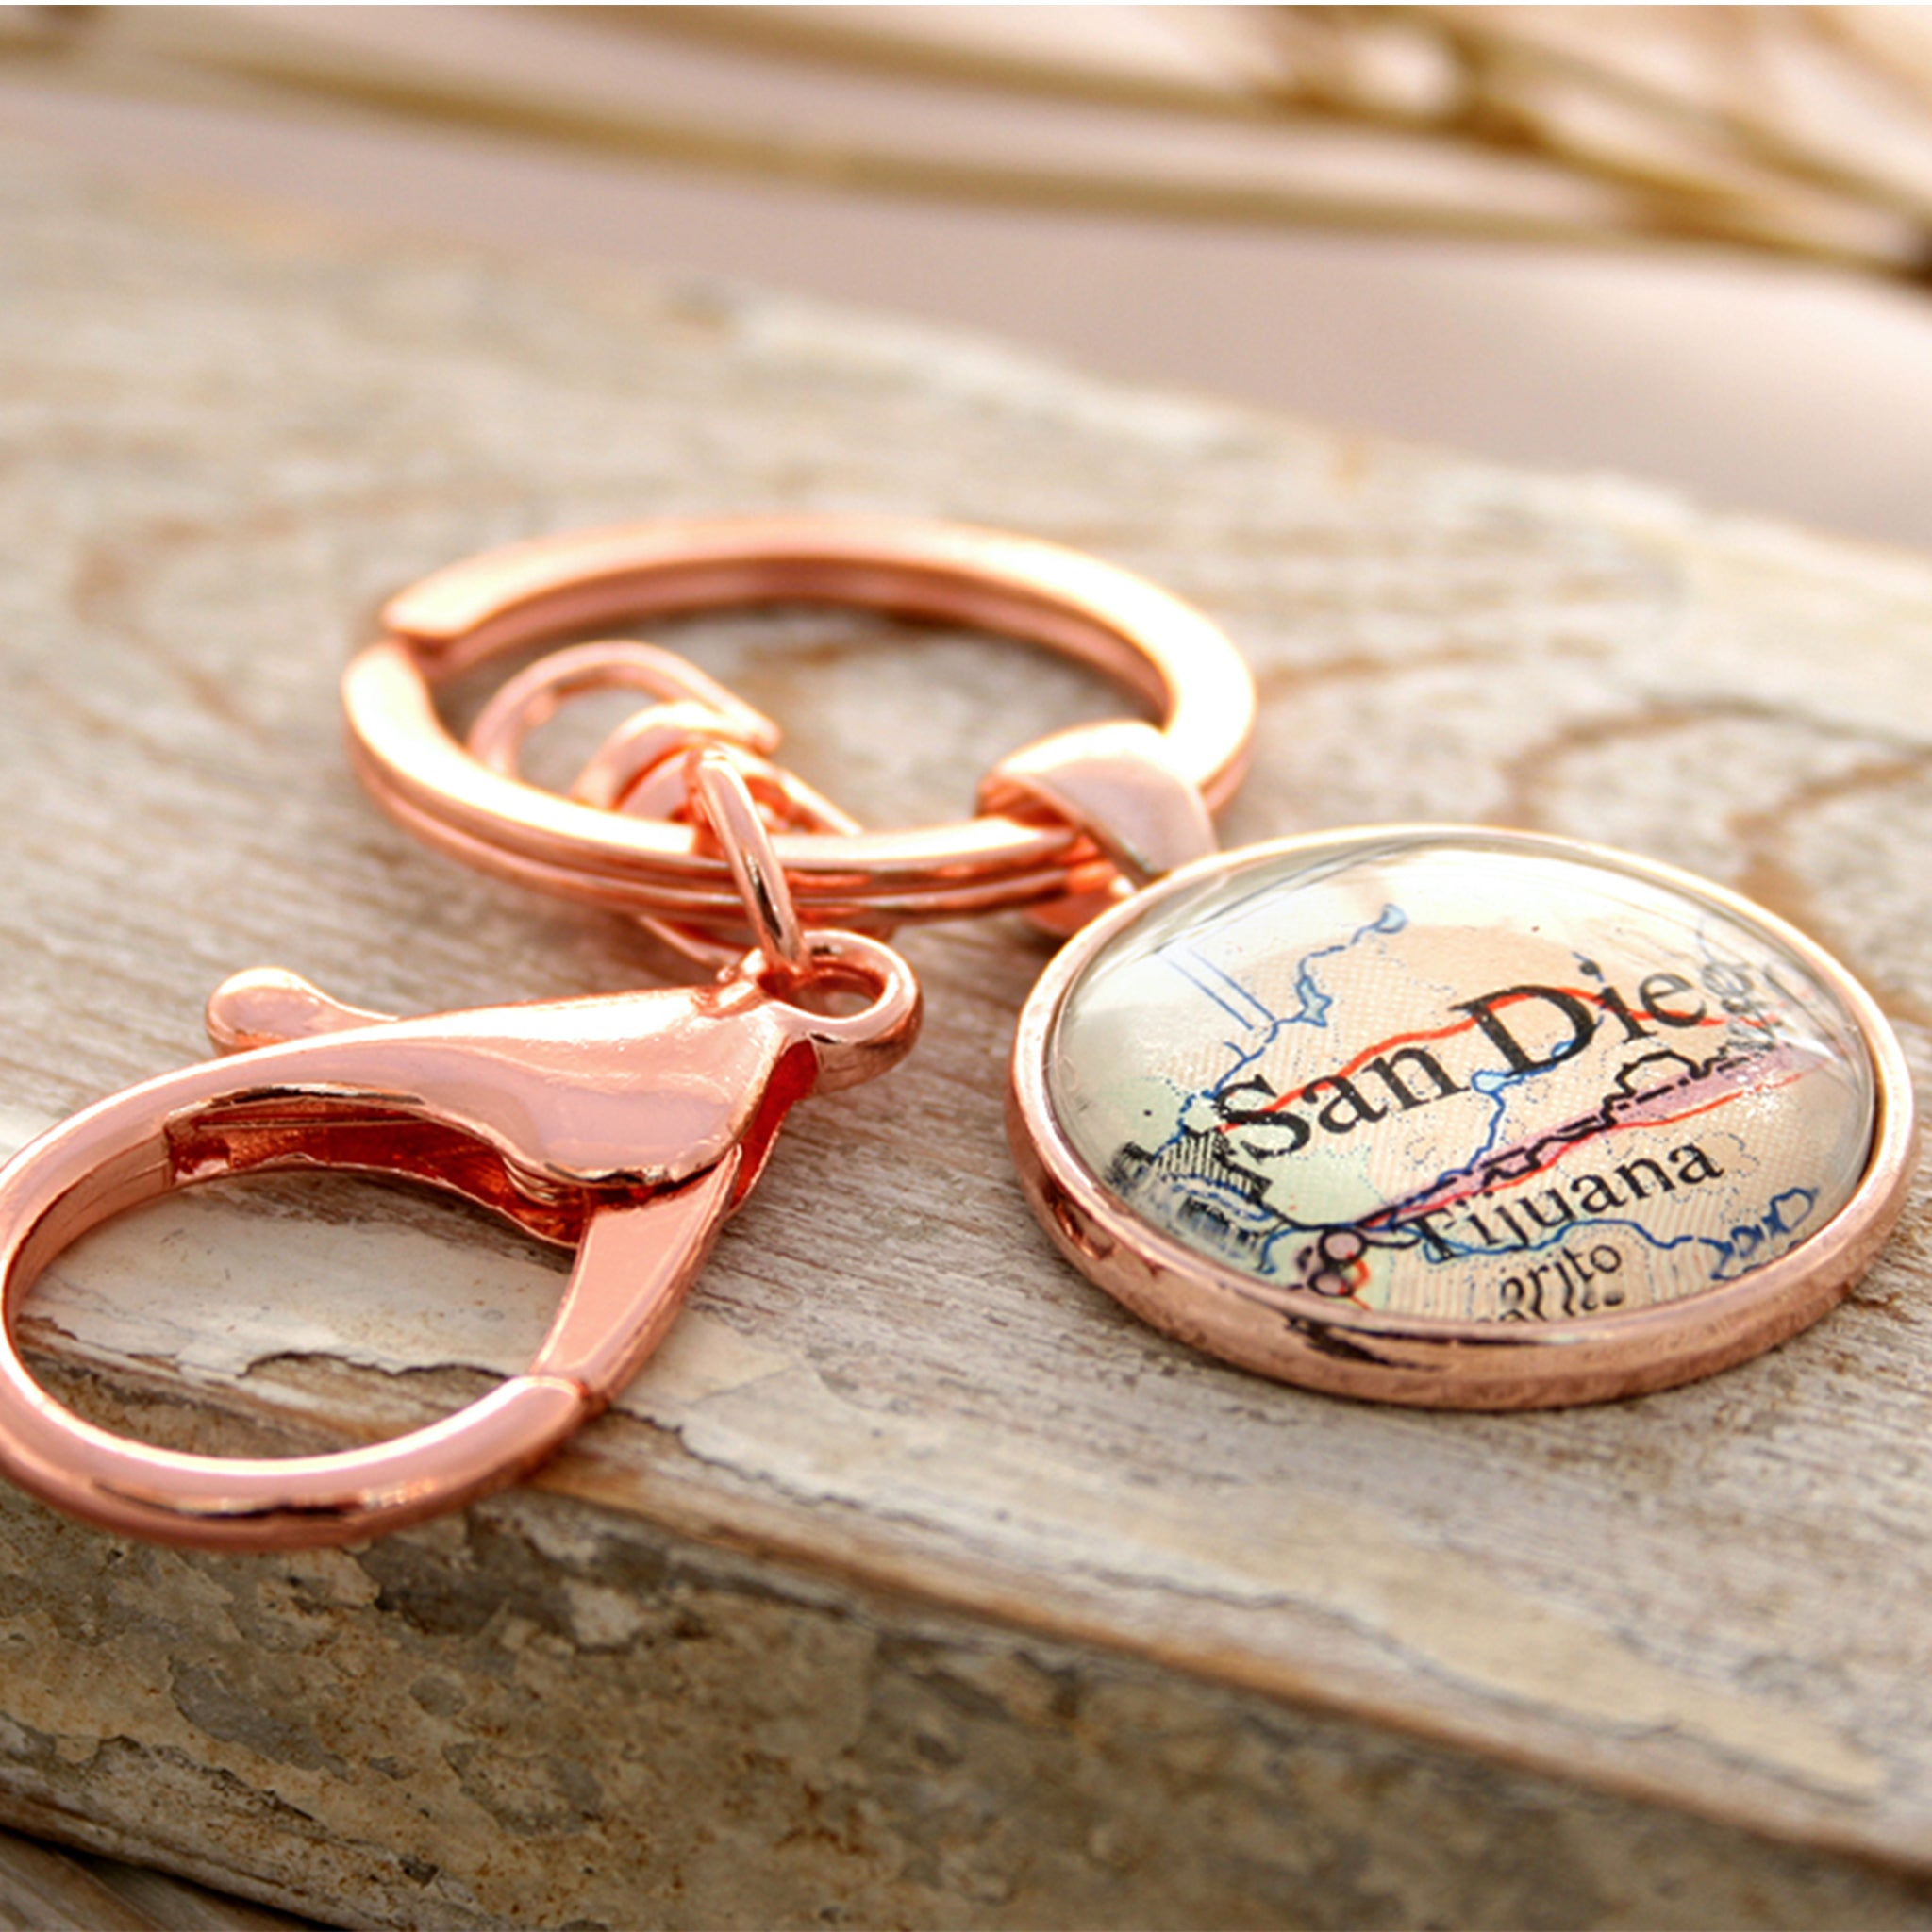 Personalised keyring in rose gold color featuring map of San Diego